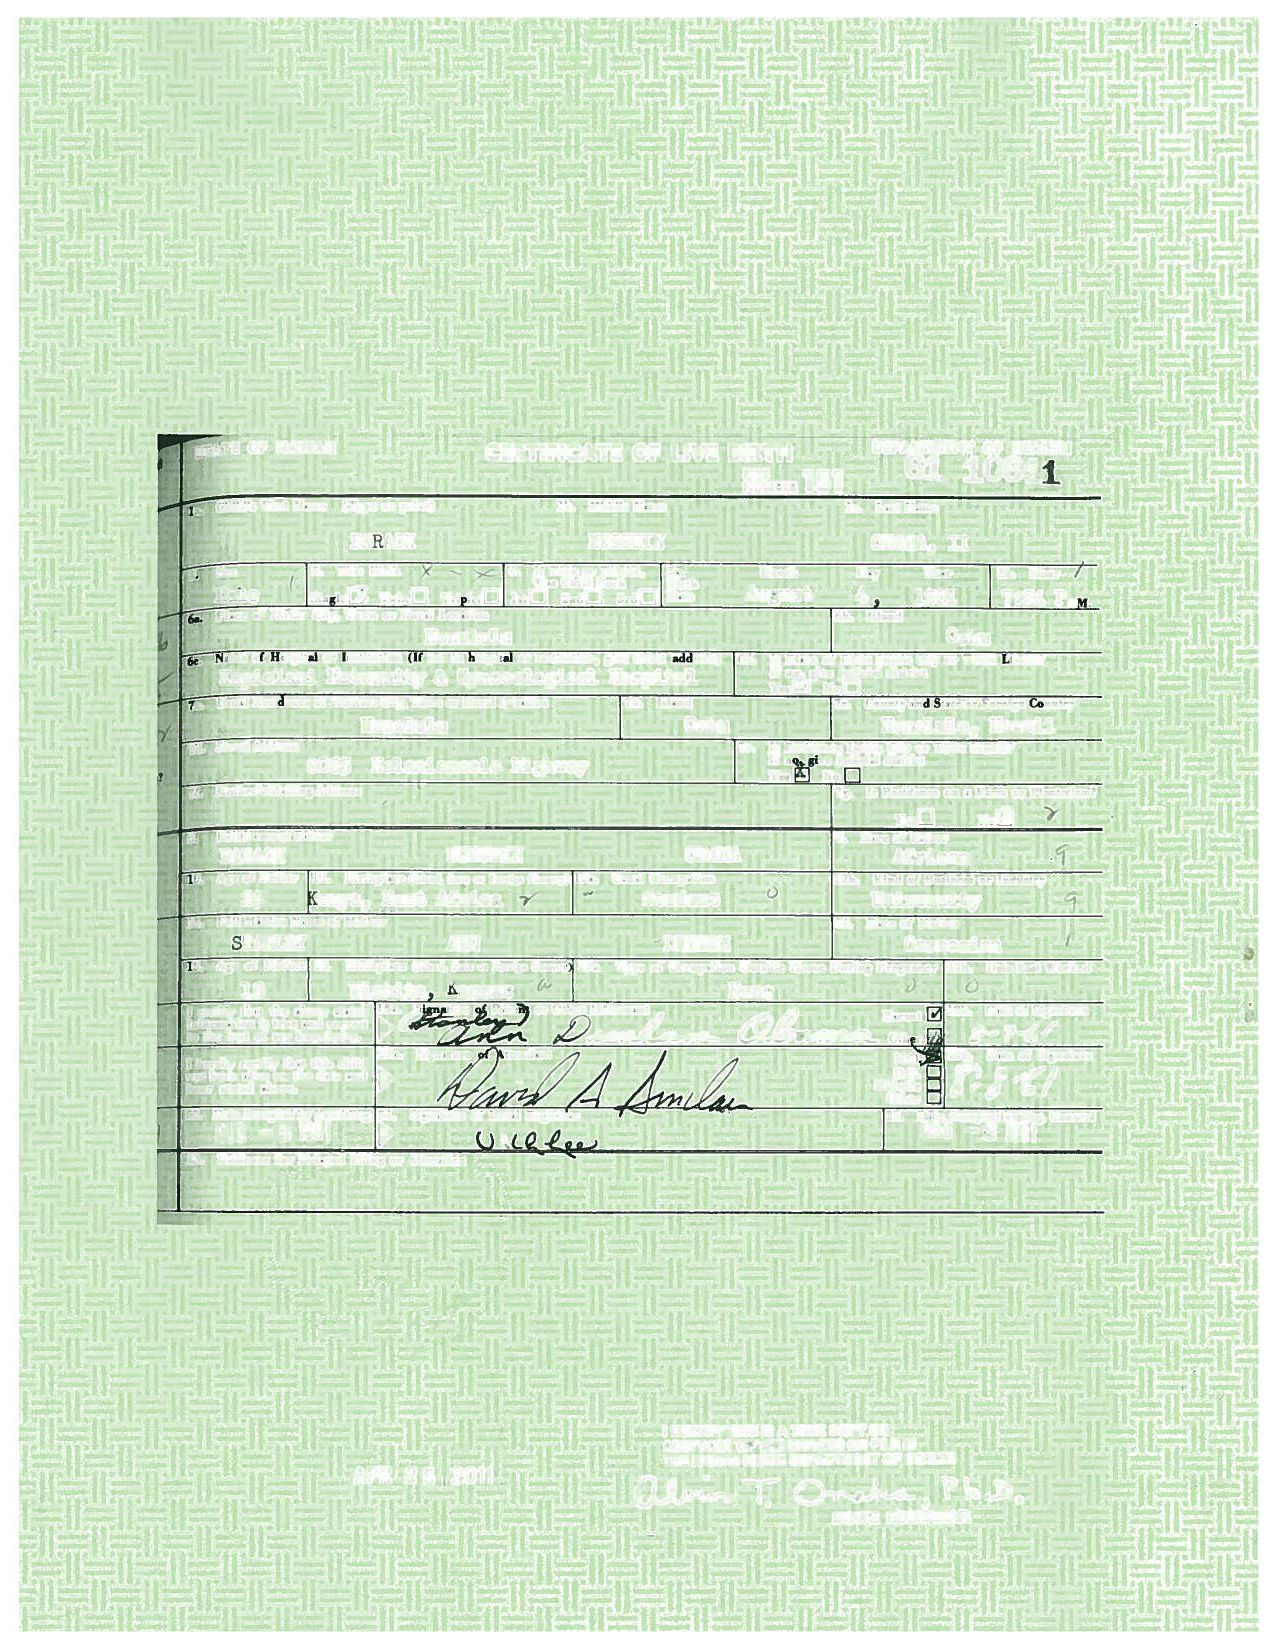 Obama birth certificate a famous pinterest obama birth obama birth certificate a famous pinterest obama birth certificate aiddatafo Image collections